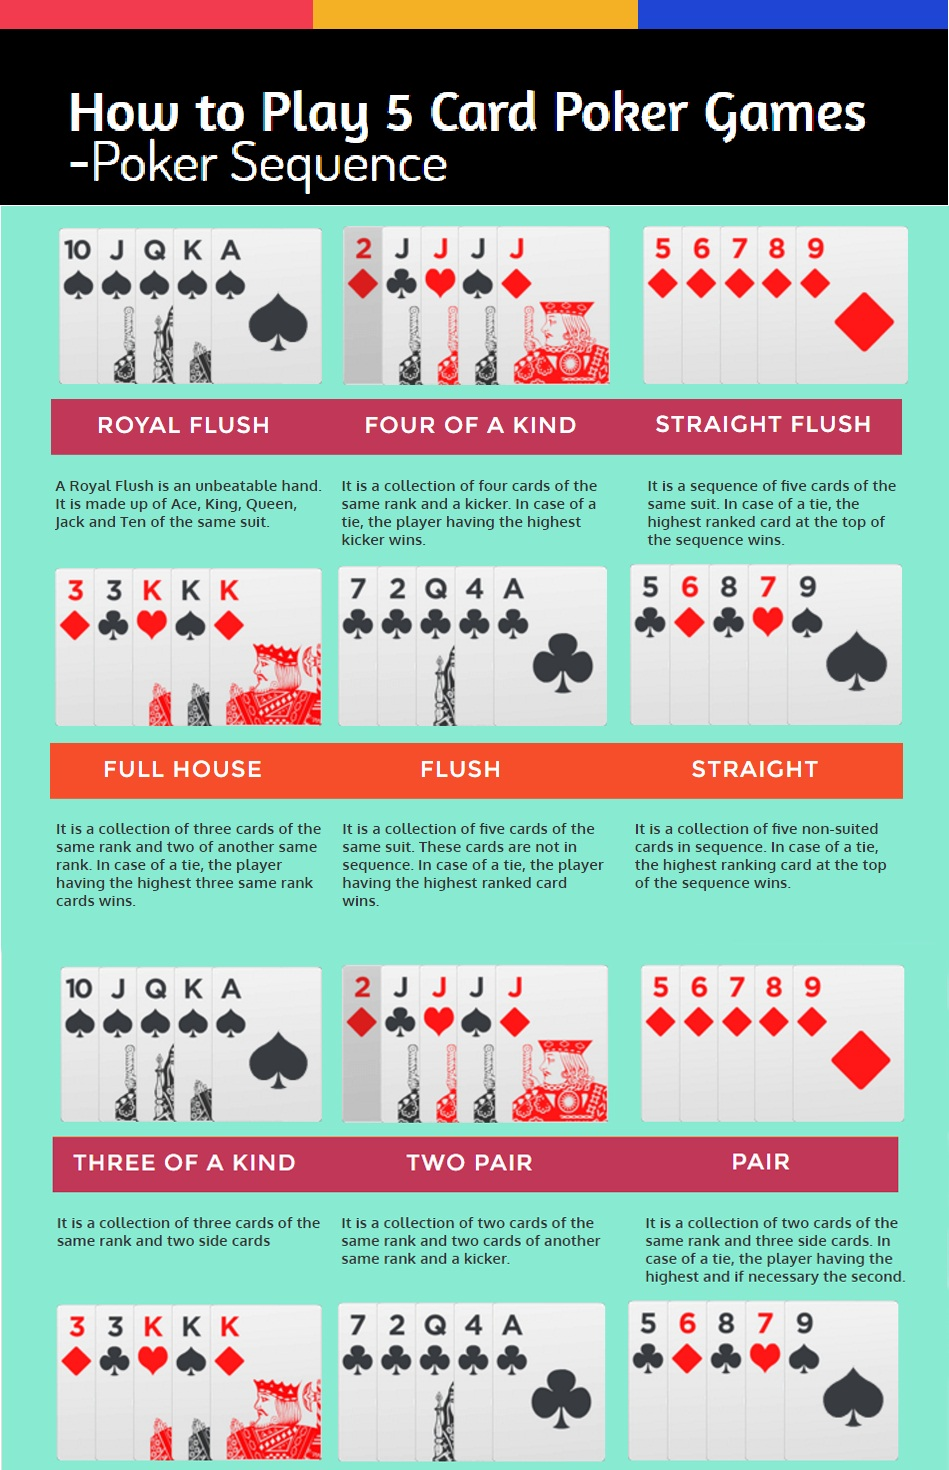 5 card poker hand rankings